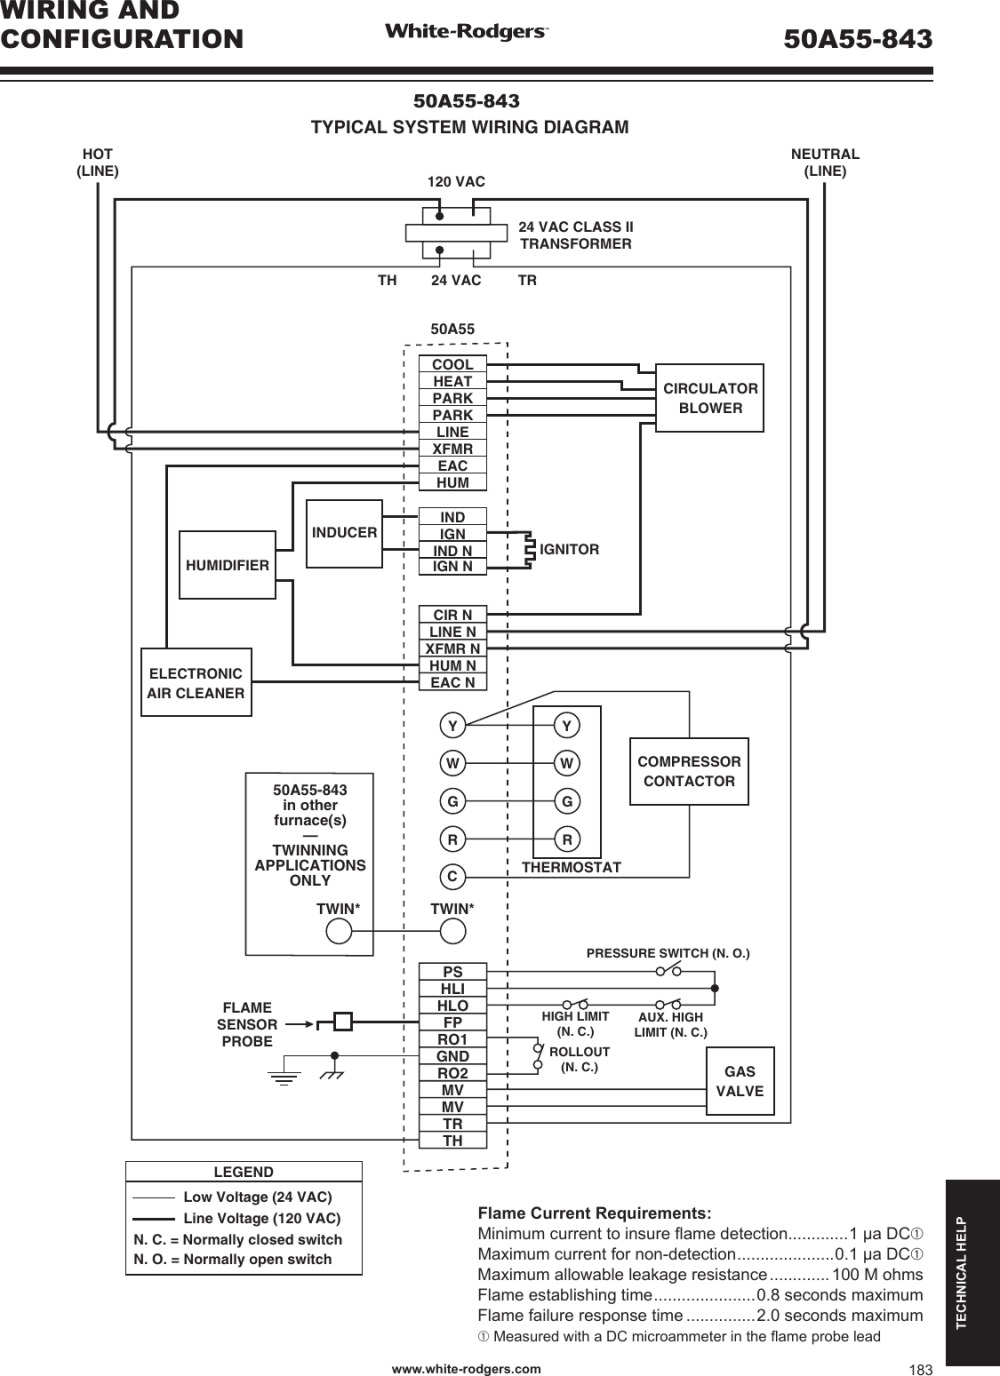 medium resolution of white rodgers 50a55 843 universal silicon carbide integrated furnace control wiring diagram 83 of rodgers catalog r 4425